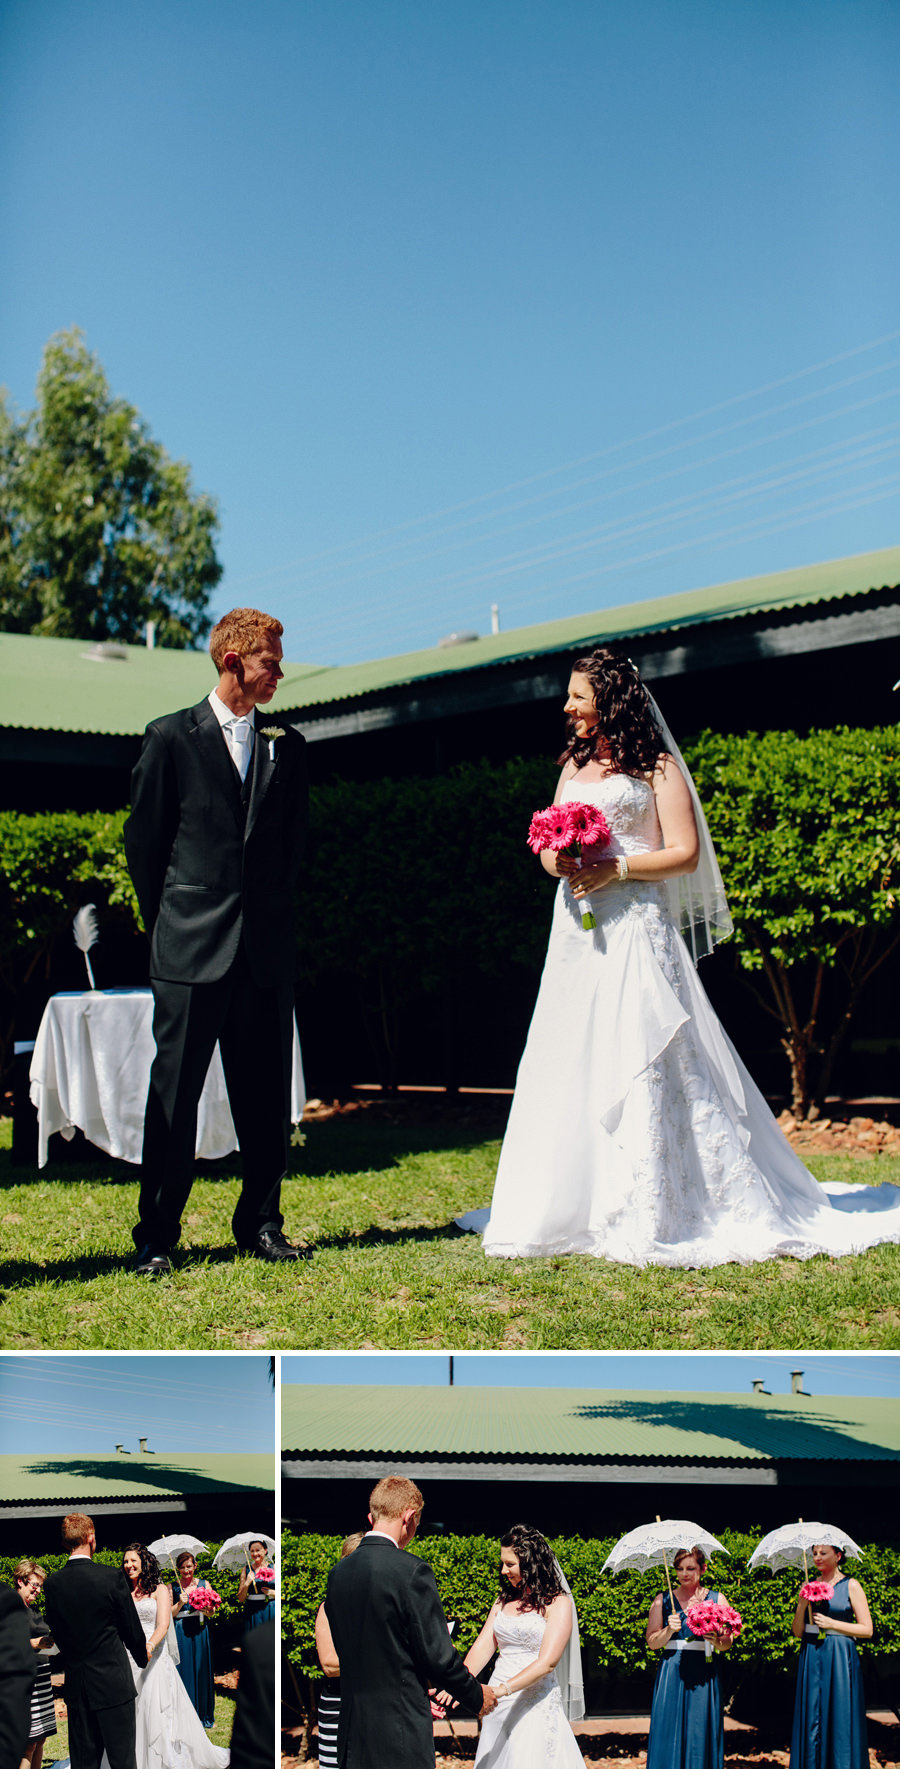 Chifley Alice Springs Wedding Photography: Karen & James during ceremony